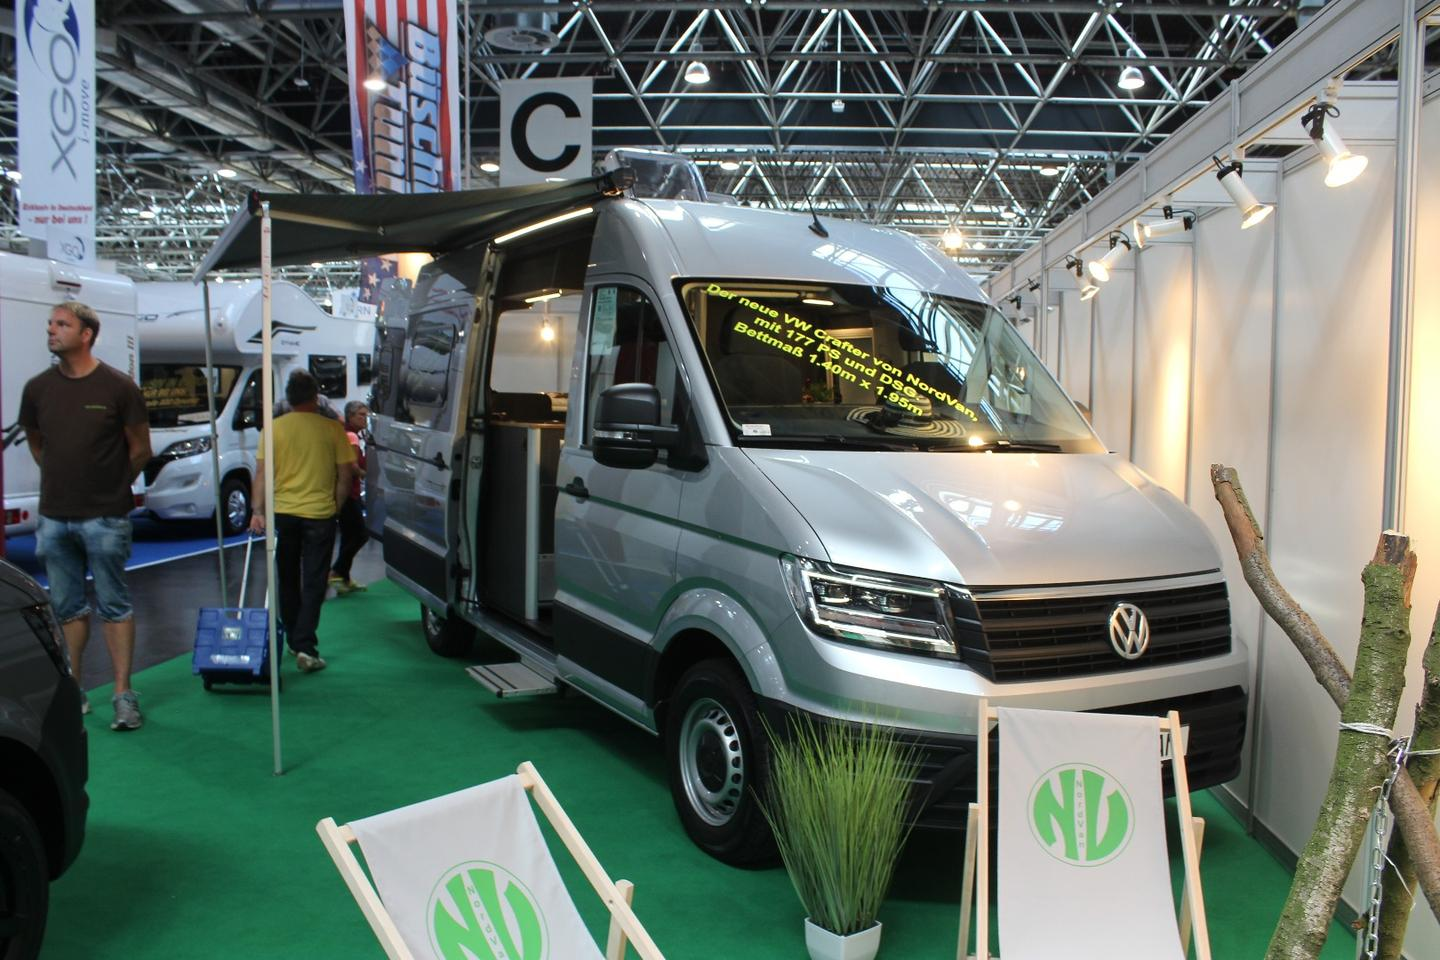 NordVan has created a very nice, self-sufficient Crafter camper van that runs entirely on diesel fuel and electricity